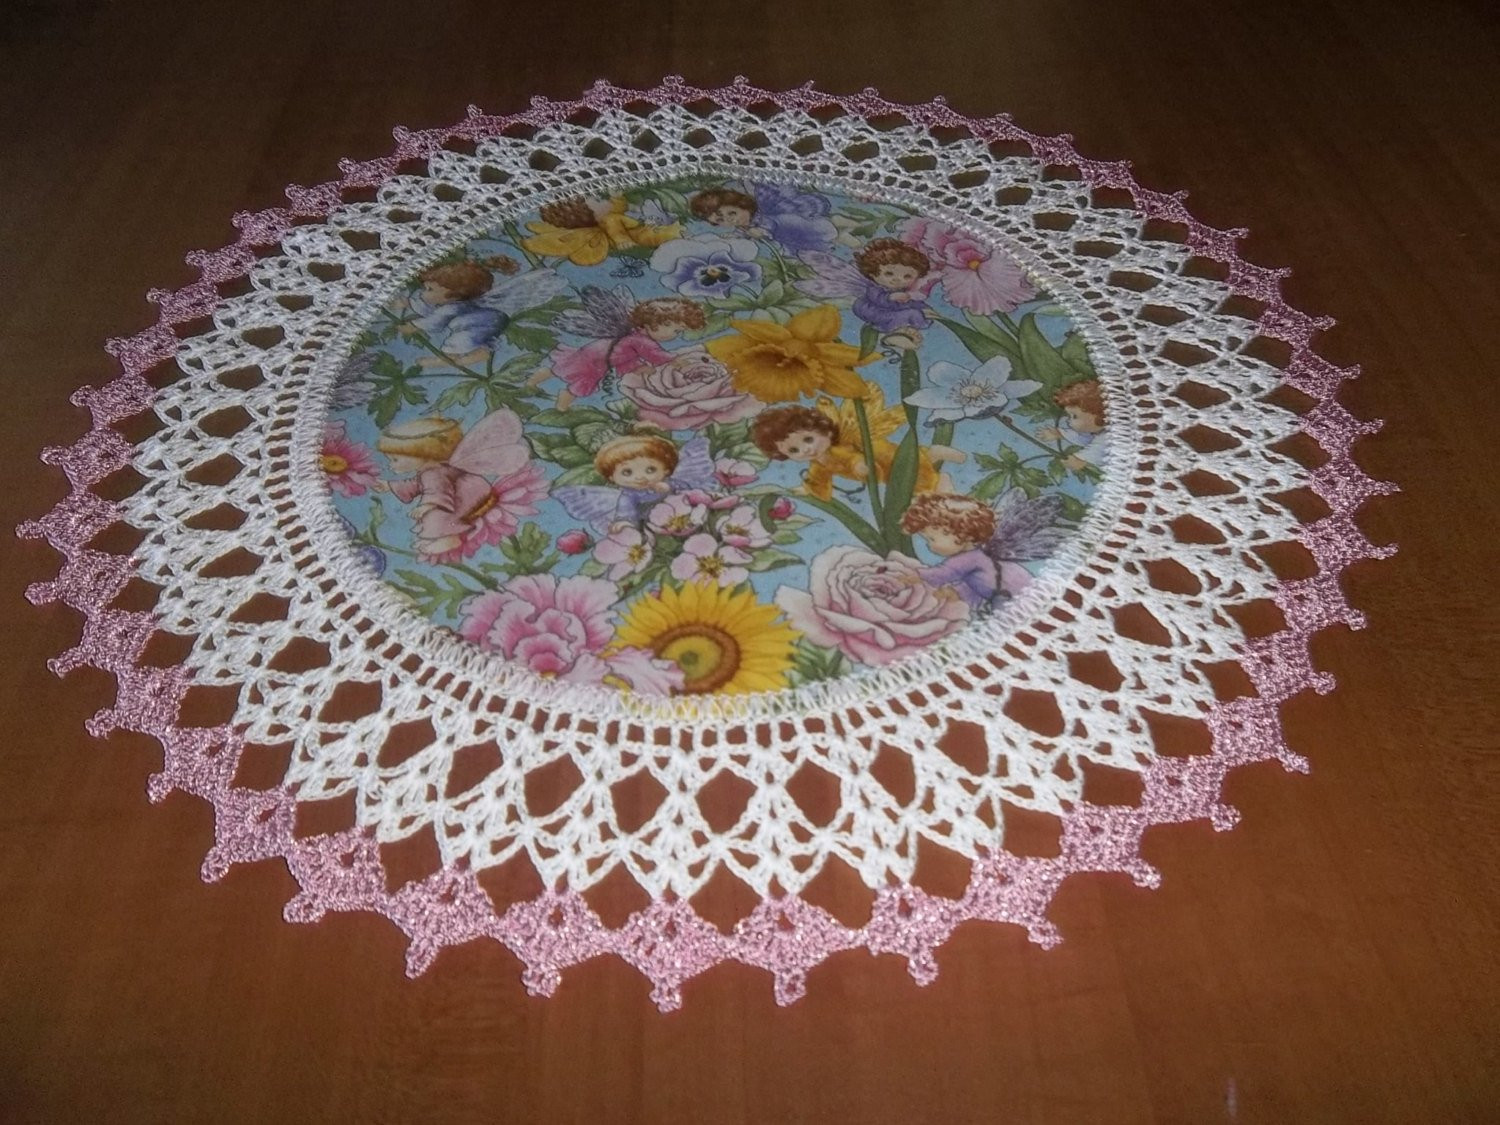 Fabric Doilies Luxury Crochet Doily Angel Doily Fairies Floral Fabric Doily Of Attractive 41 Pics Fabric Doilies